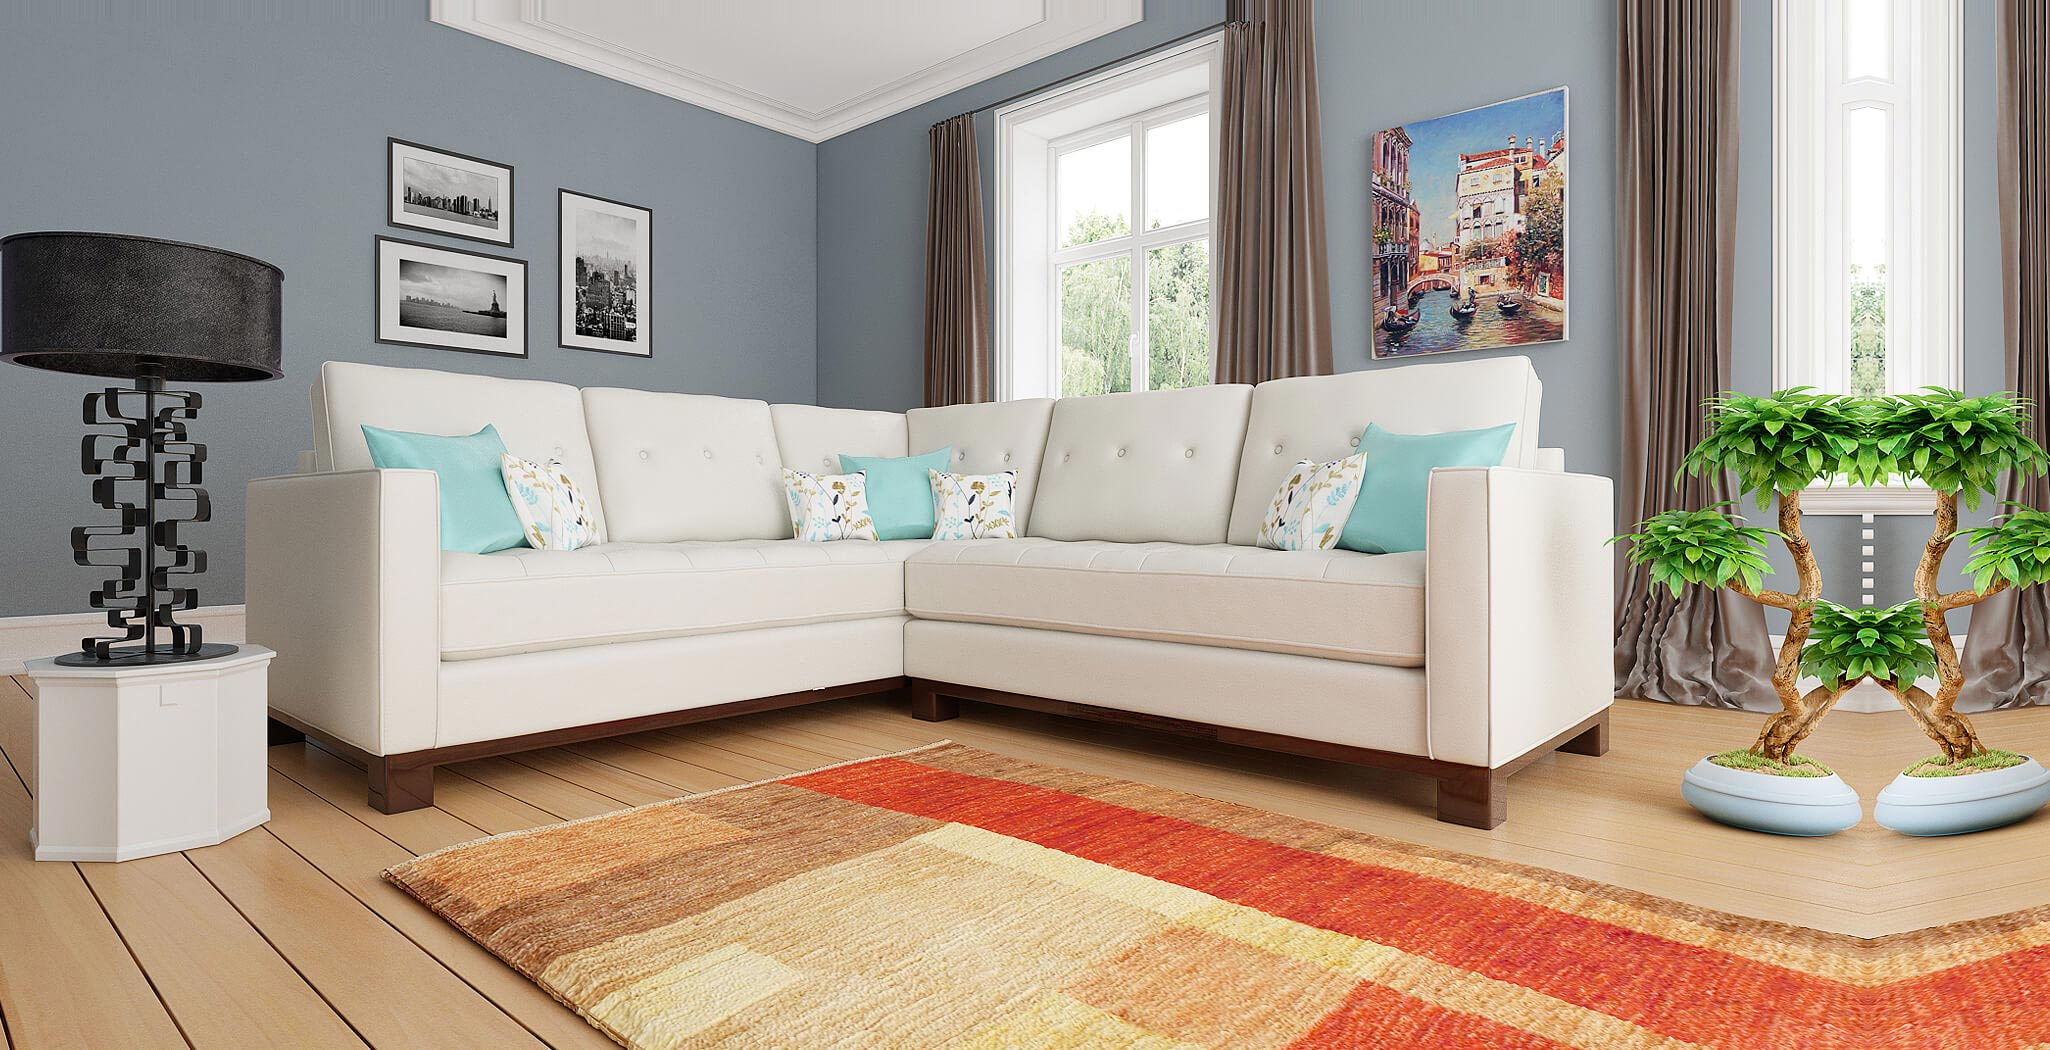 syros sectional furniture gallery 4